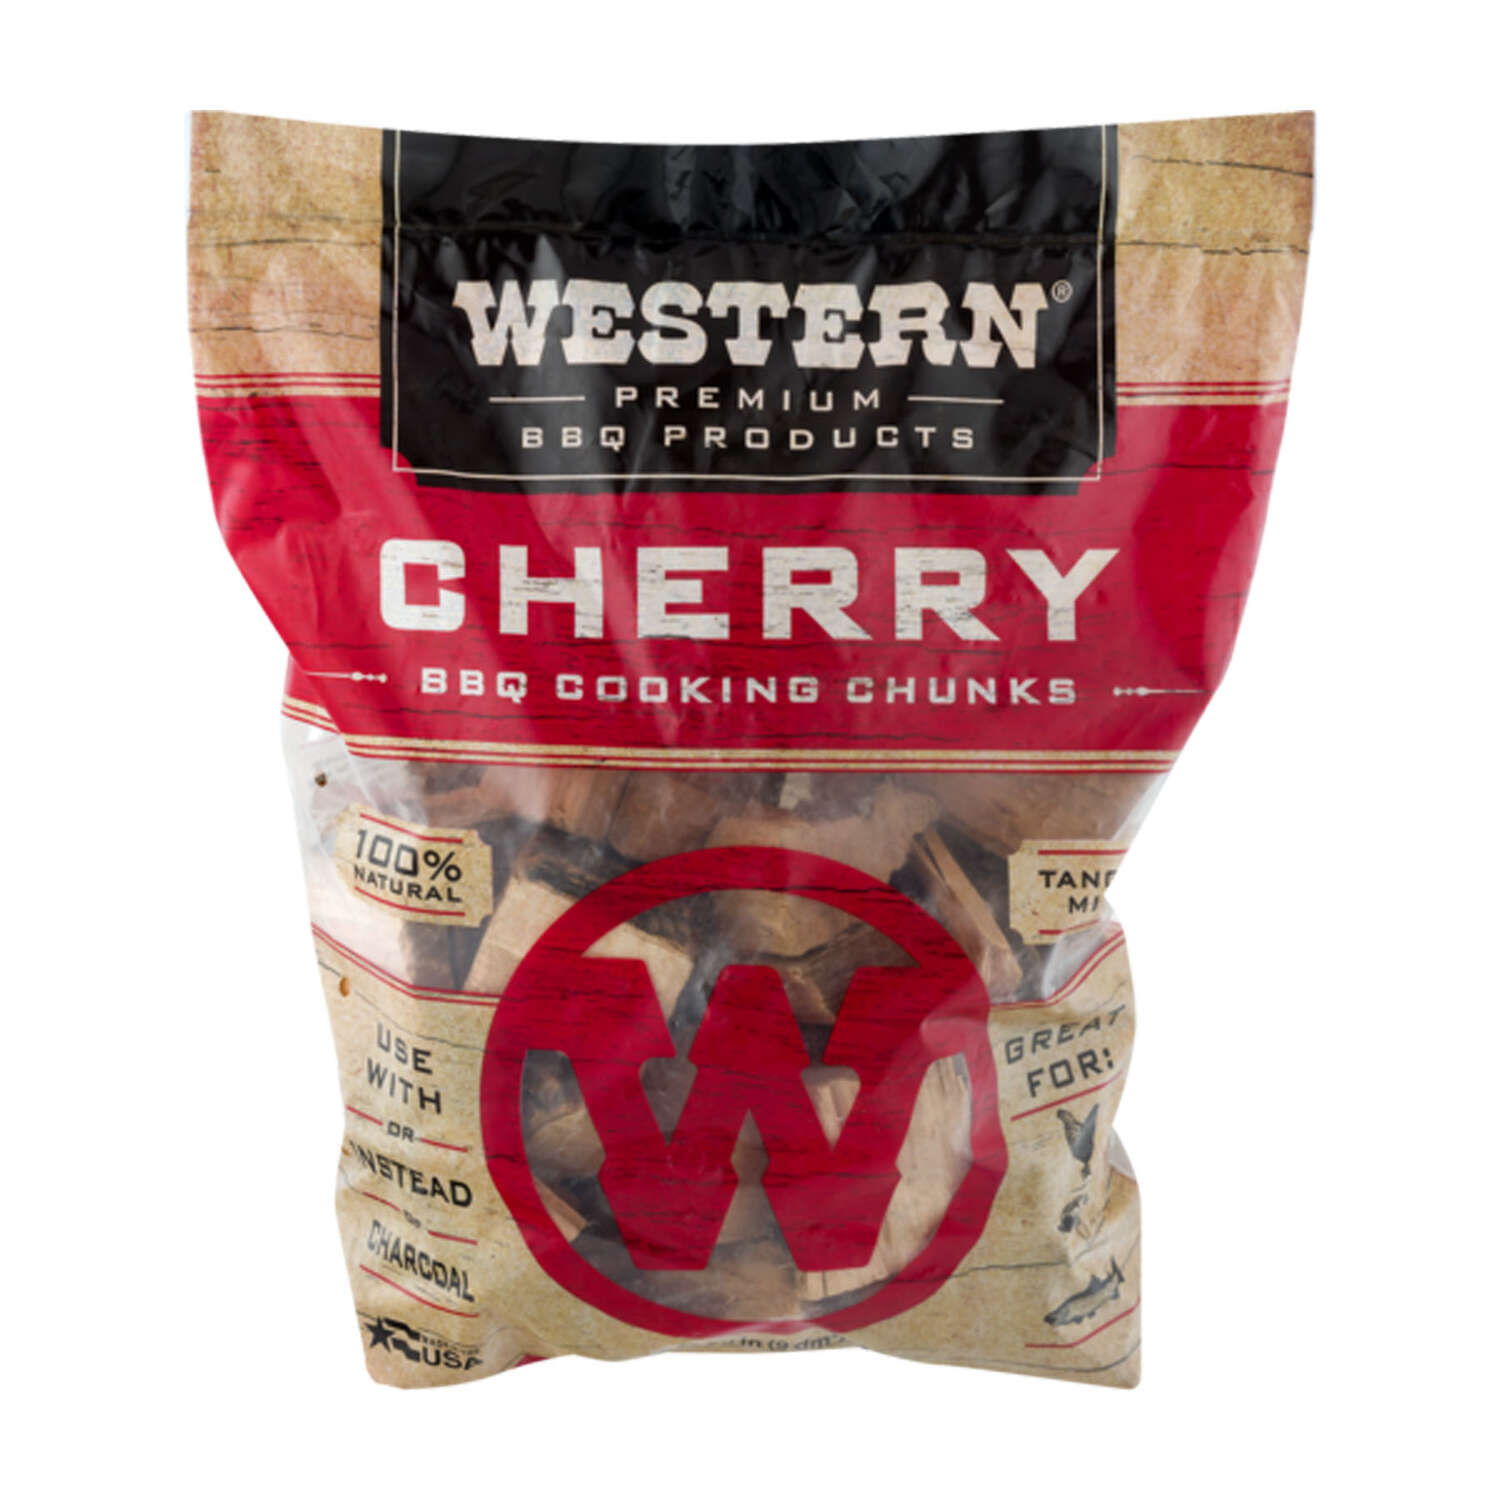 Western Cherry Cooking Chunks 549 cu. in.